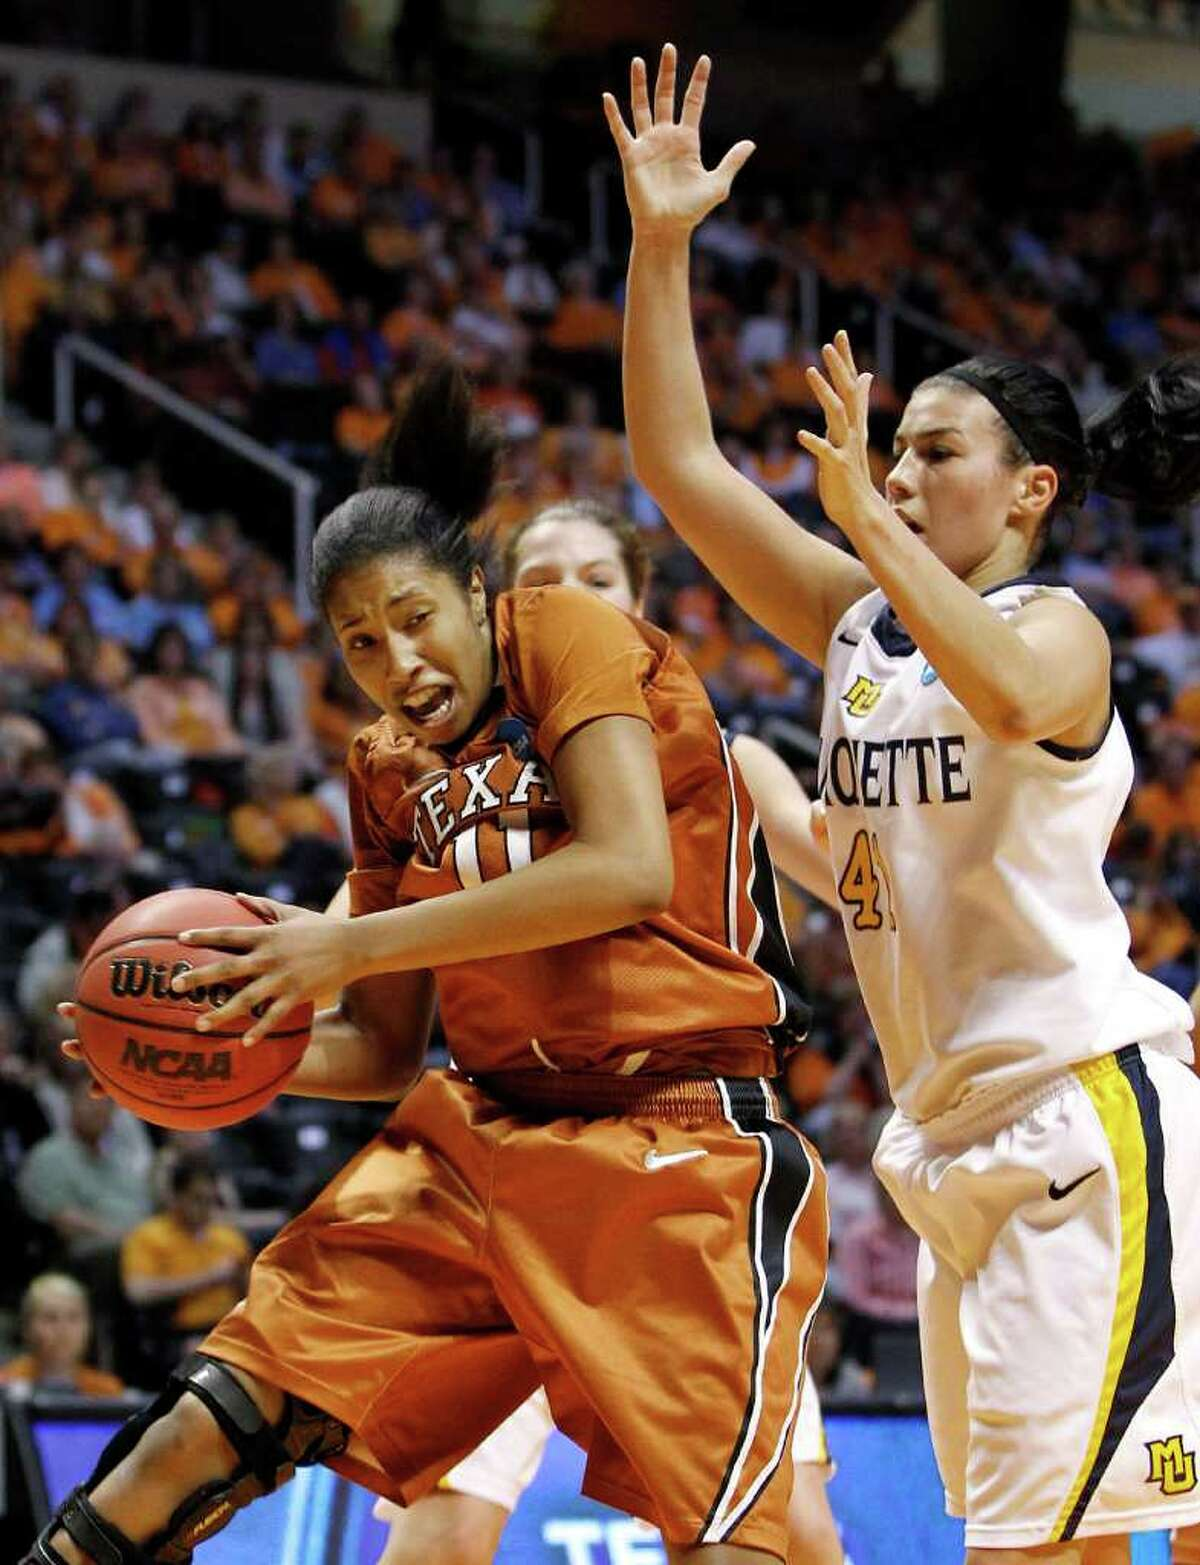 Texas guard Chelsea Bass (11) takes a rebound away from Marquette forward Paige Fiedorowicz (41) during the first half of a first round game in the NCAA college basketball tournament on Saturday, March 19, 2011, in Knoxville, Tenn.